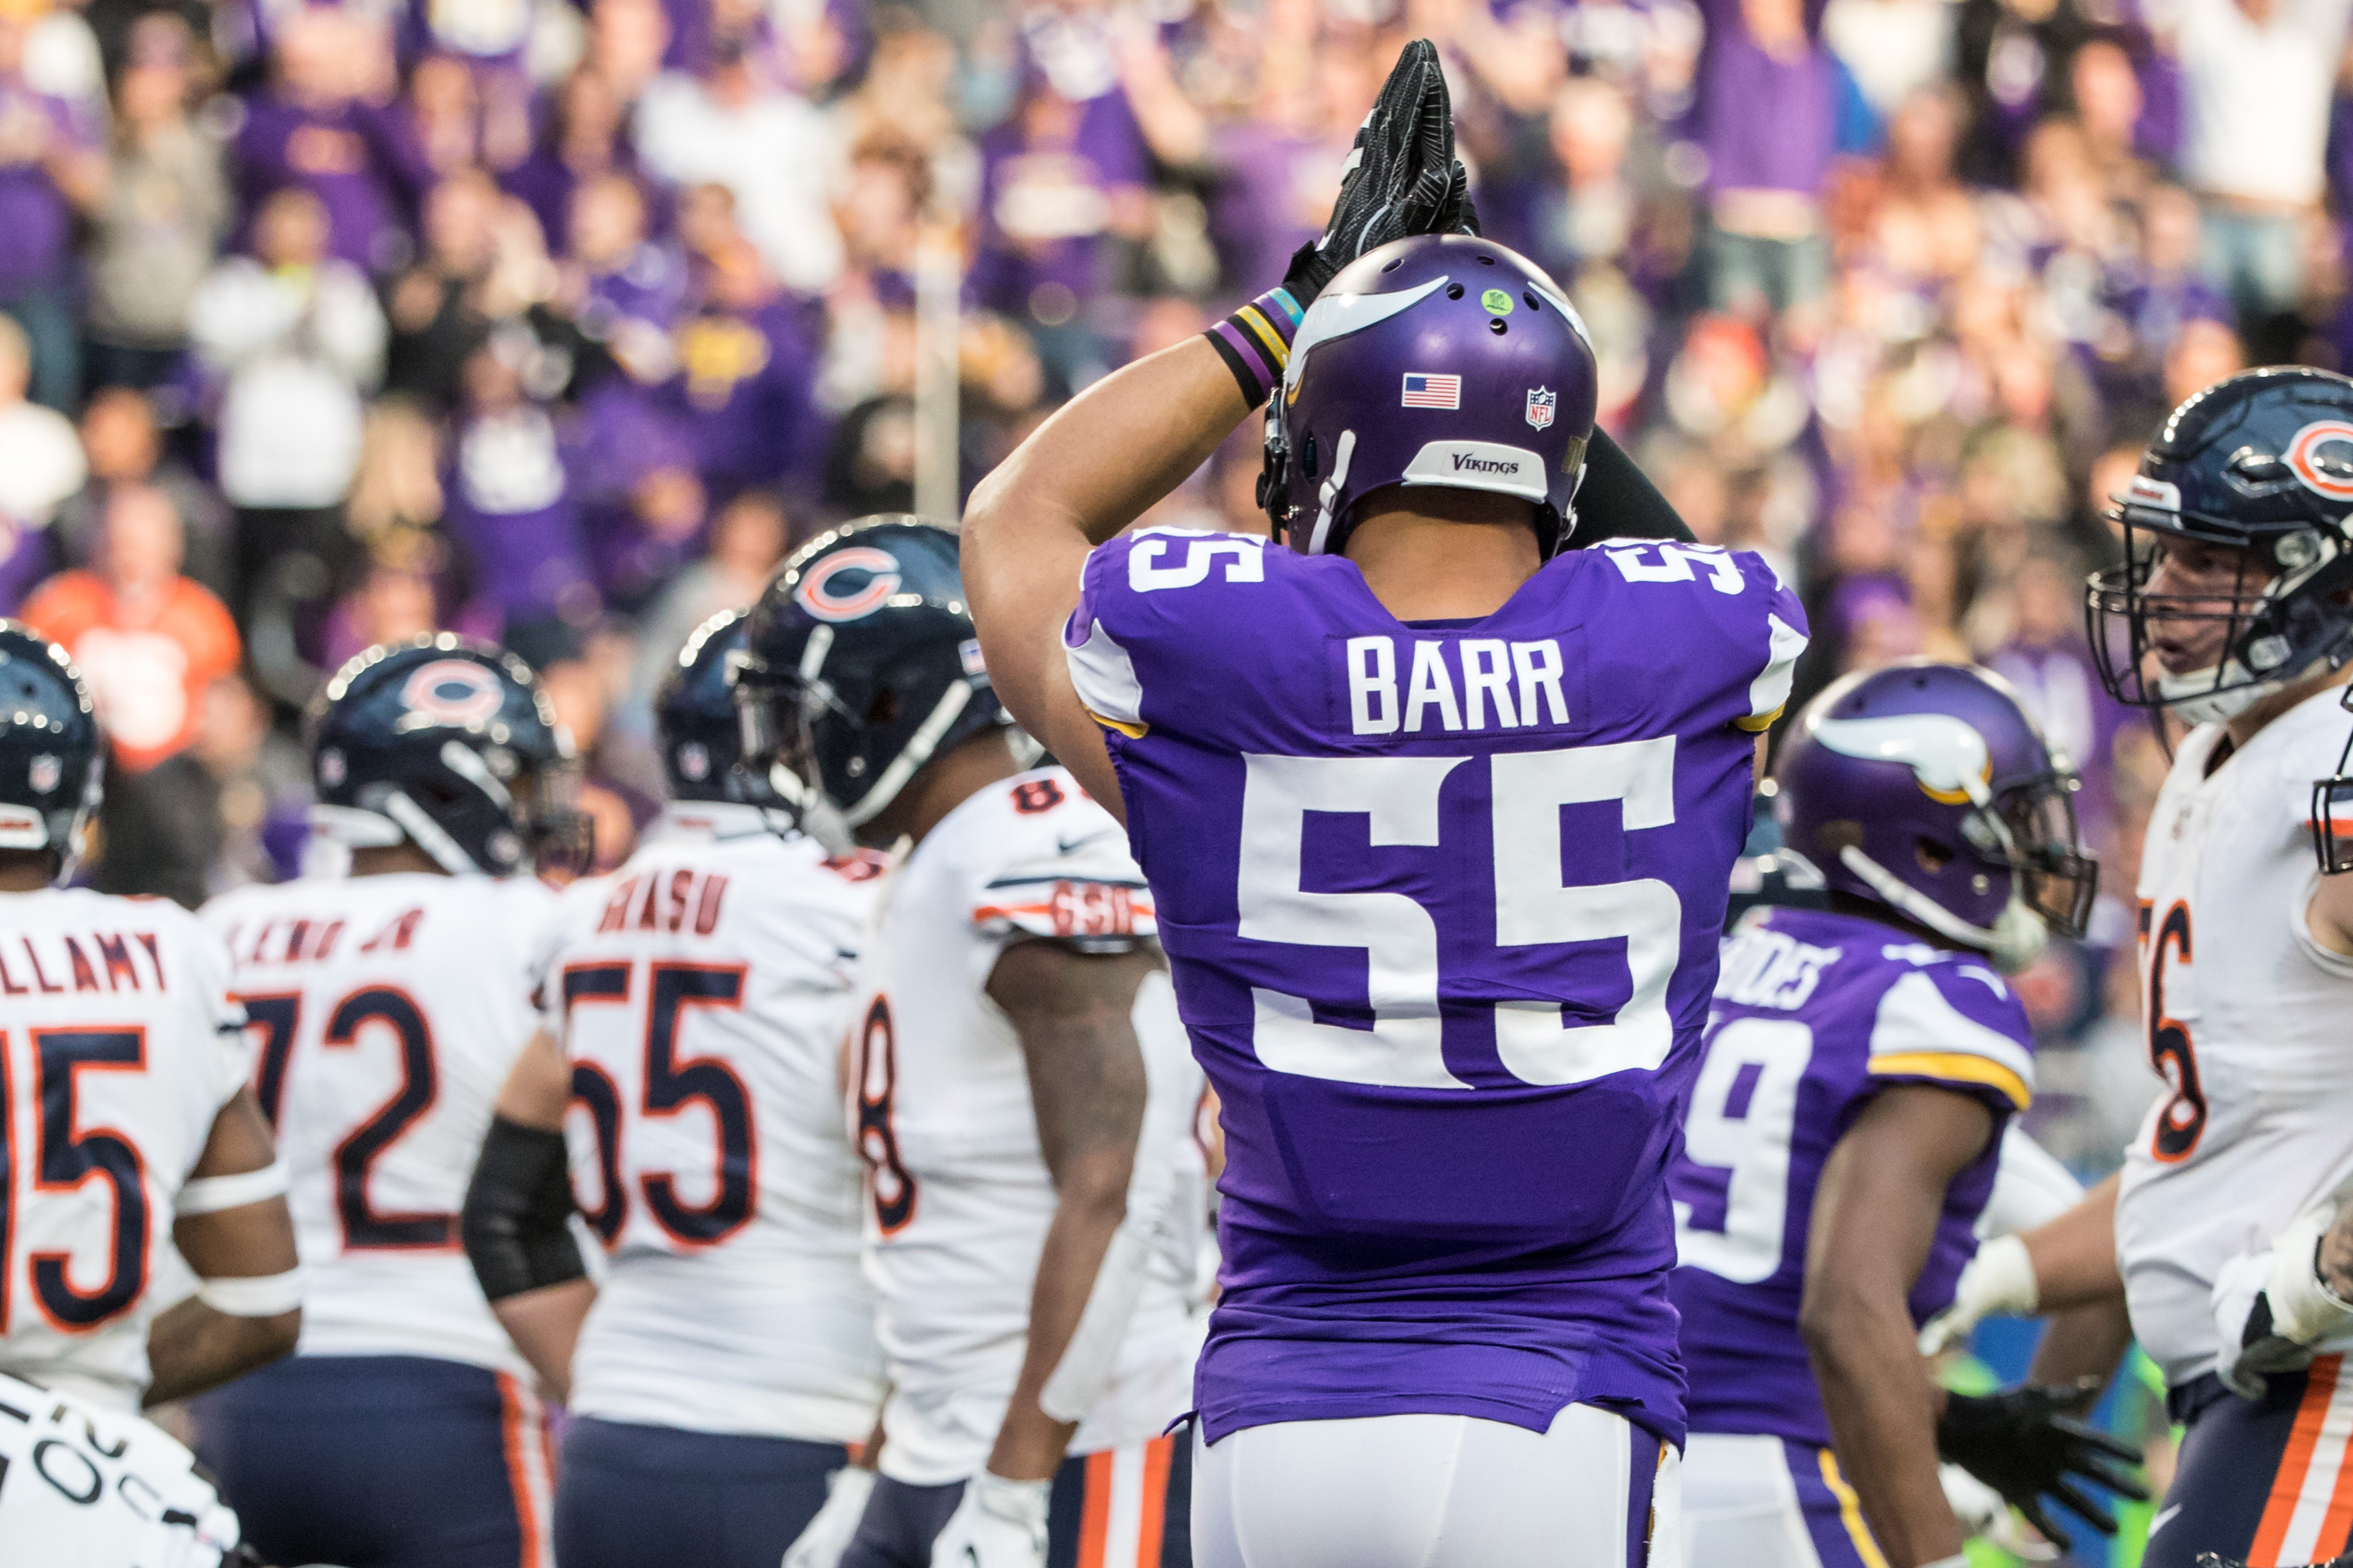 Dec 31, 2017; Minneapolis, MN, USA; Minnesota Vikings linebacker Anthony Barr (55) reacts to a safety during the second quarter against the Chicago Bears at U.S. Bank Stadium. Mandatory Credit: Brace Hemmelgarn-USA TODAY Sports